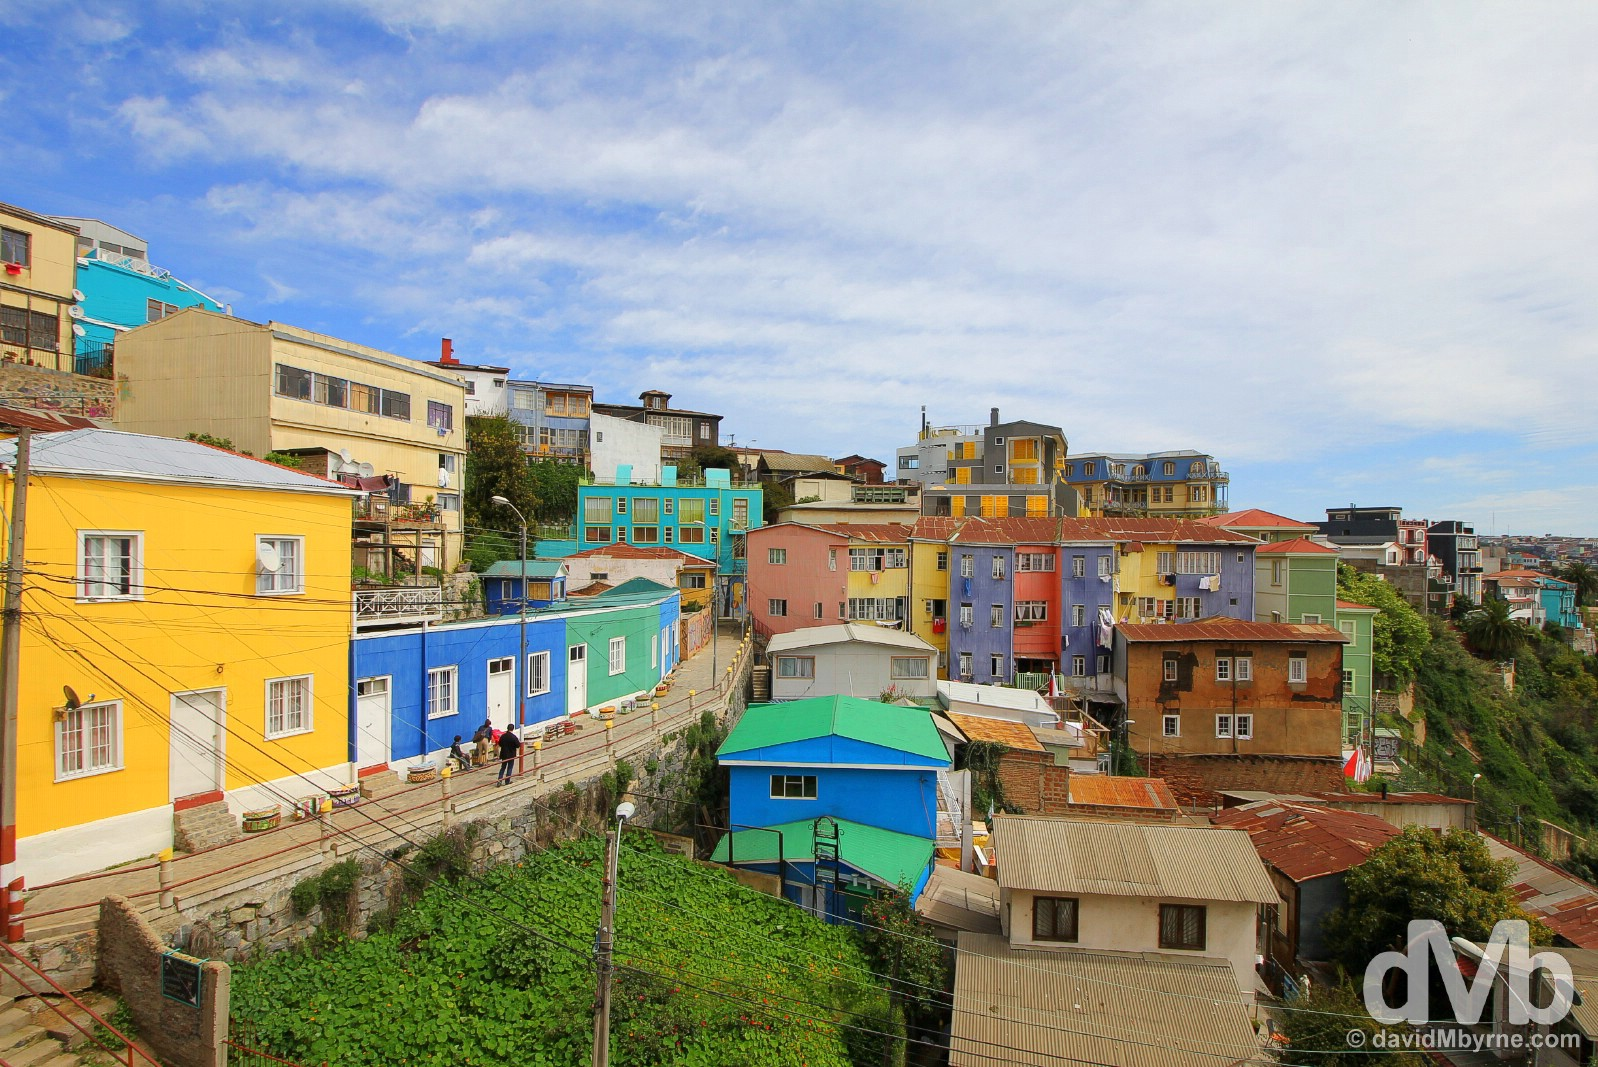 Bellavista, Valparaiso, Chile. October 8, 2015.